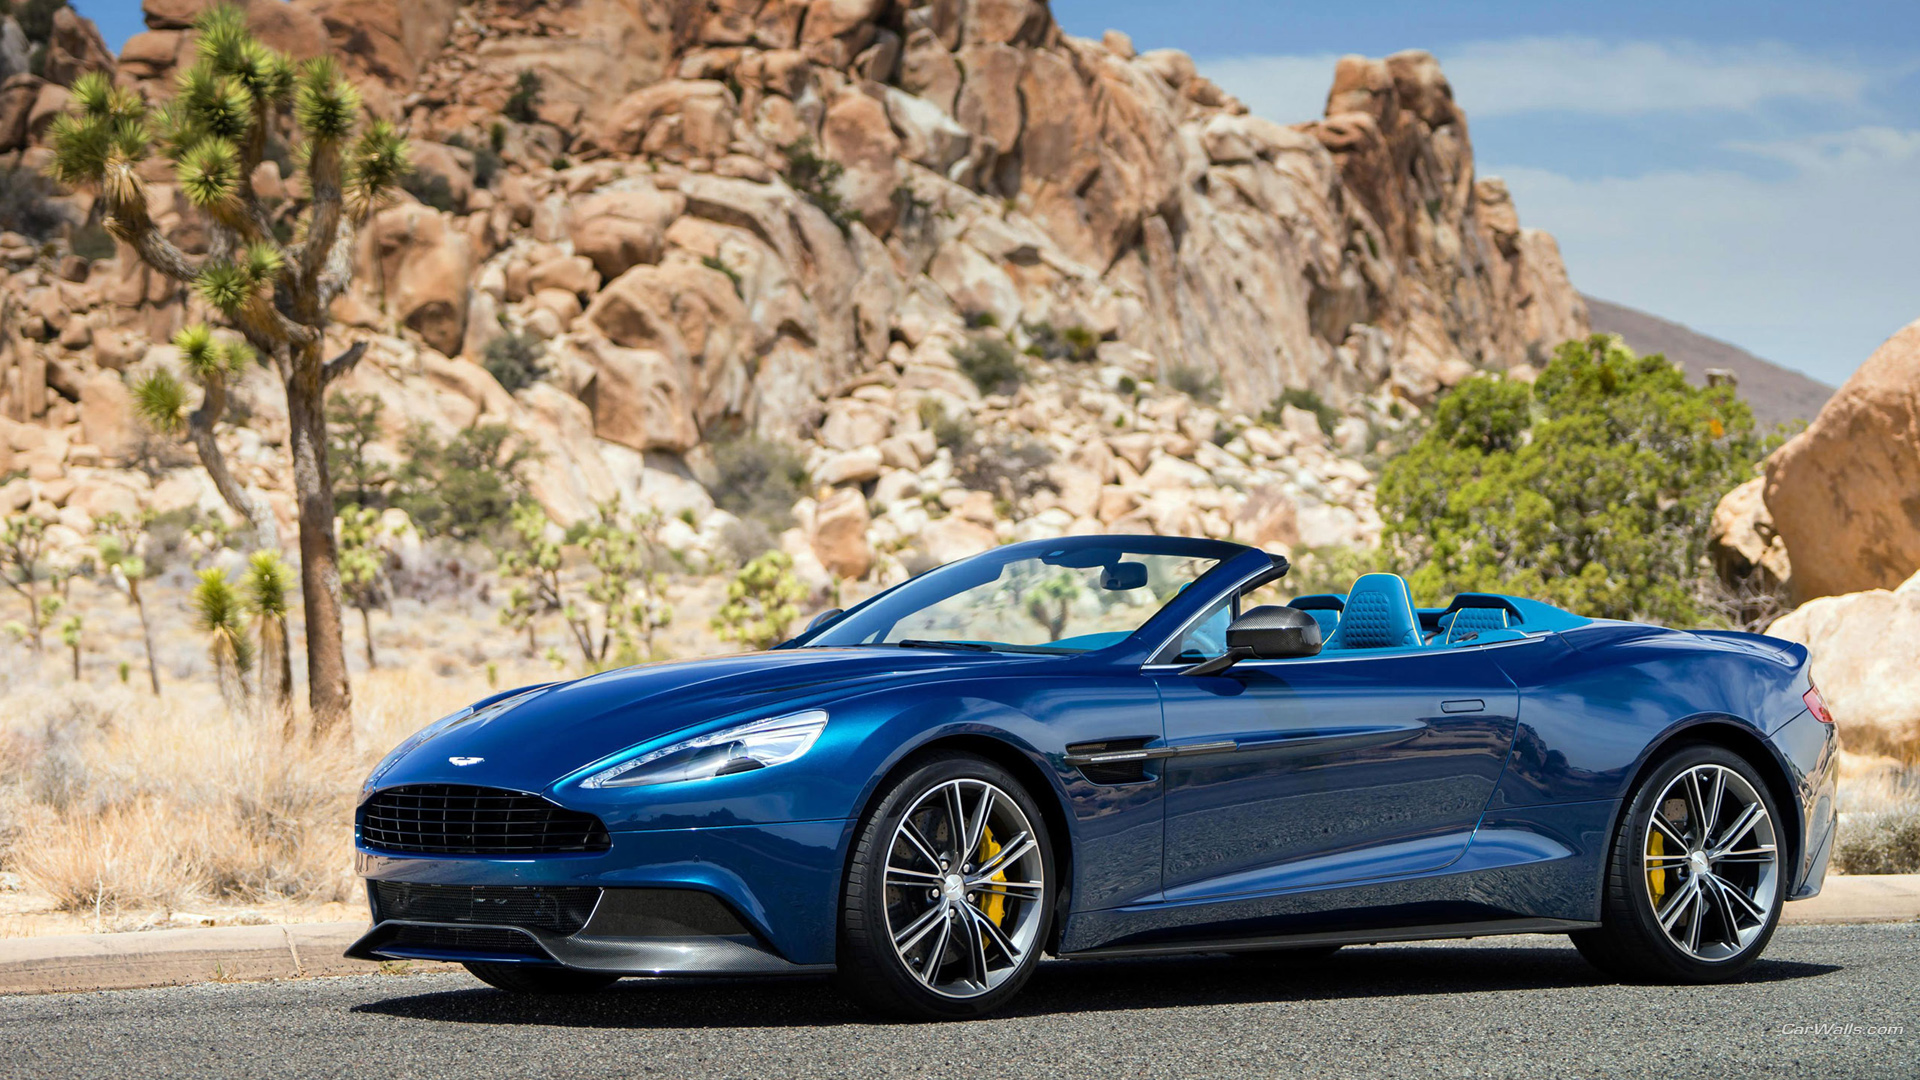 Aston Martin Vanquish 2014 Wallpaper HD Car Wallpapers 1920x1080